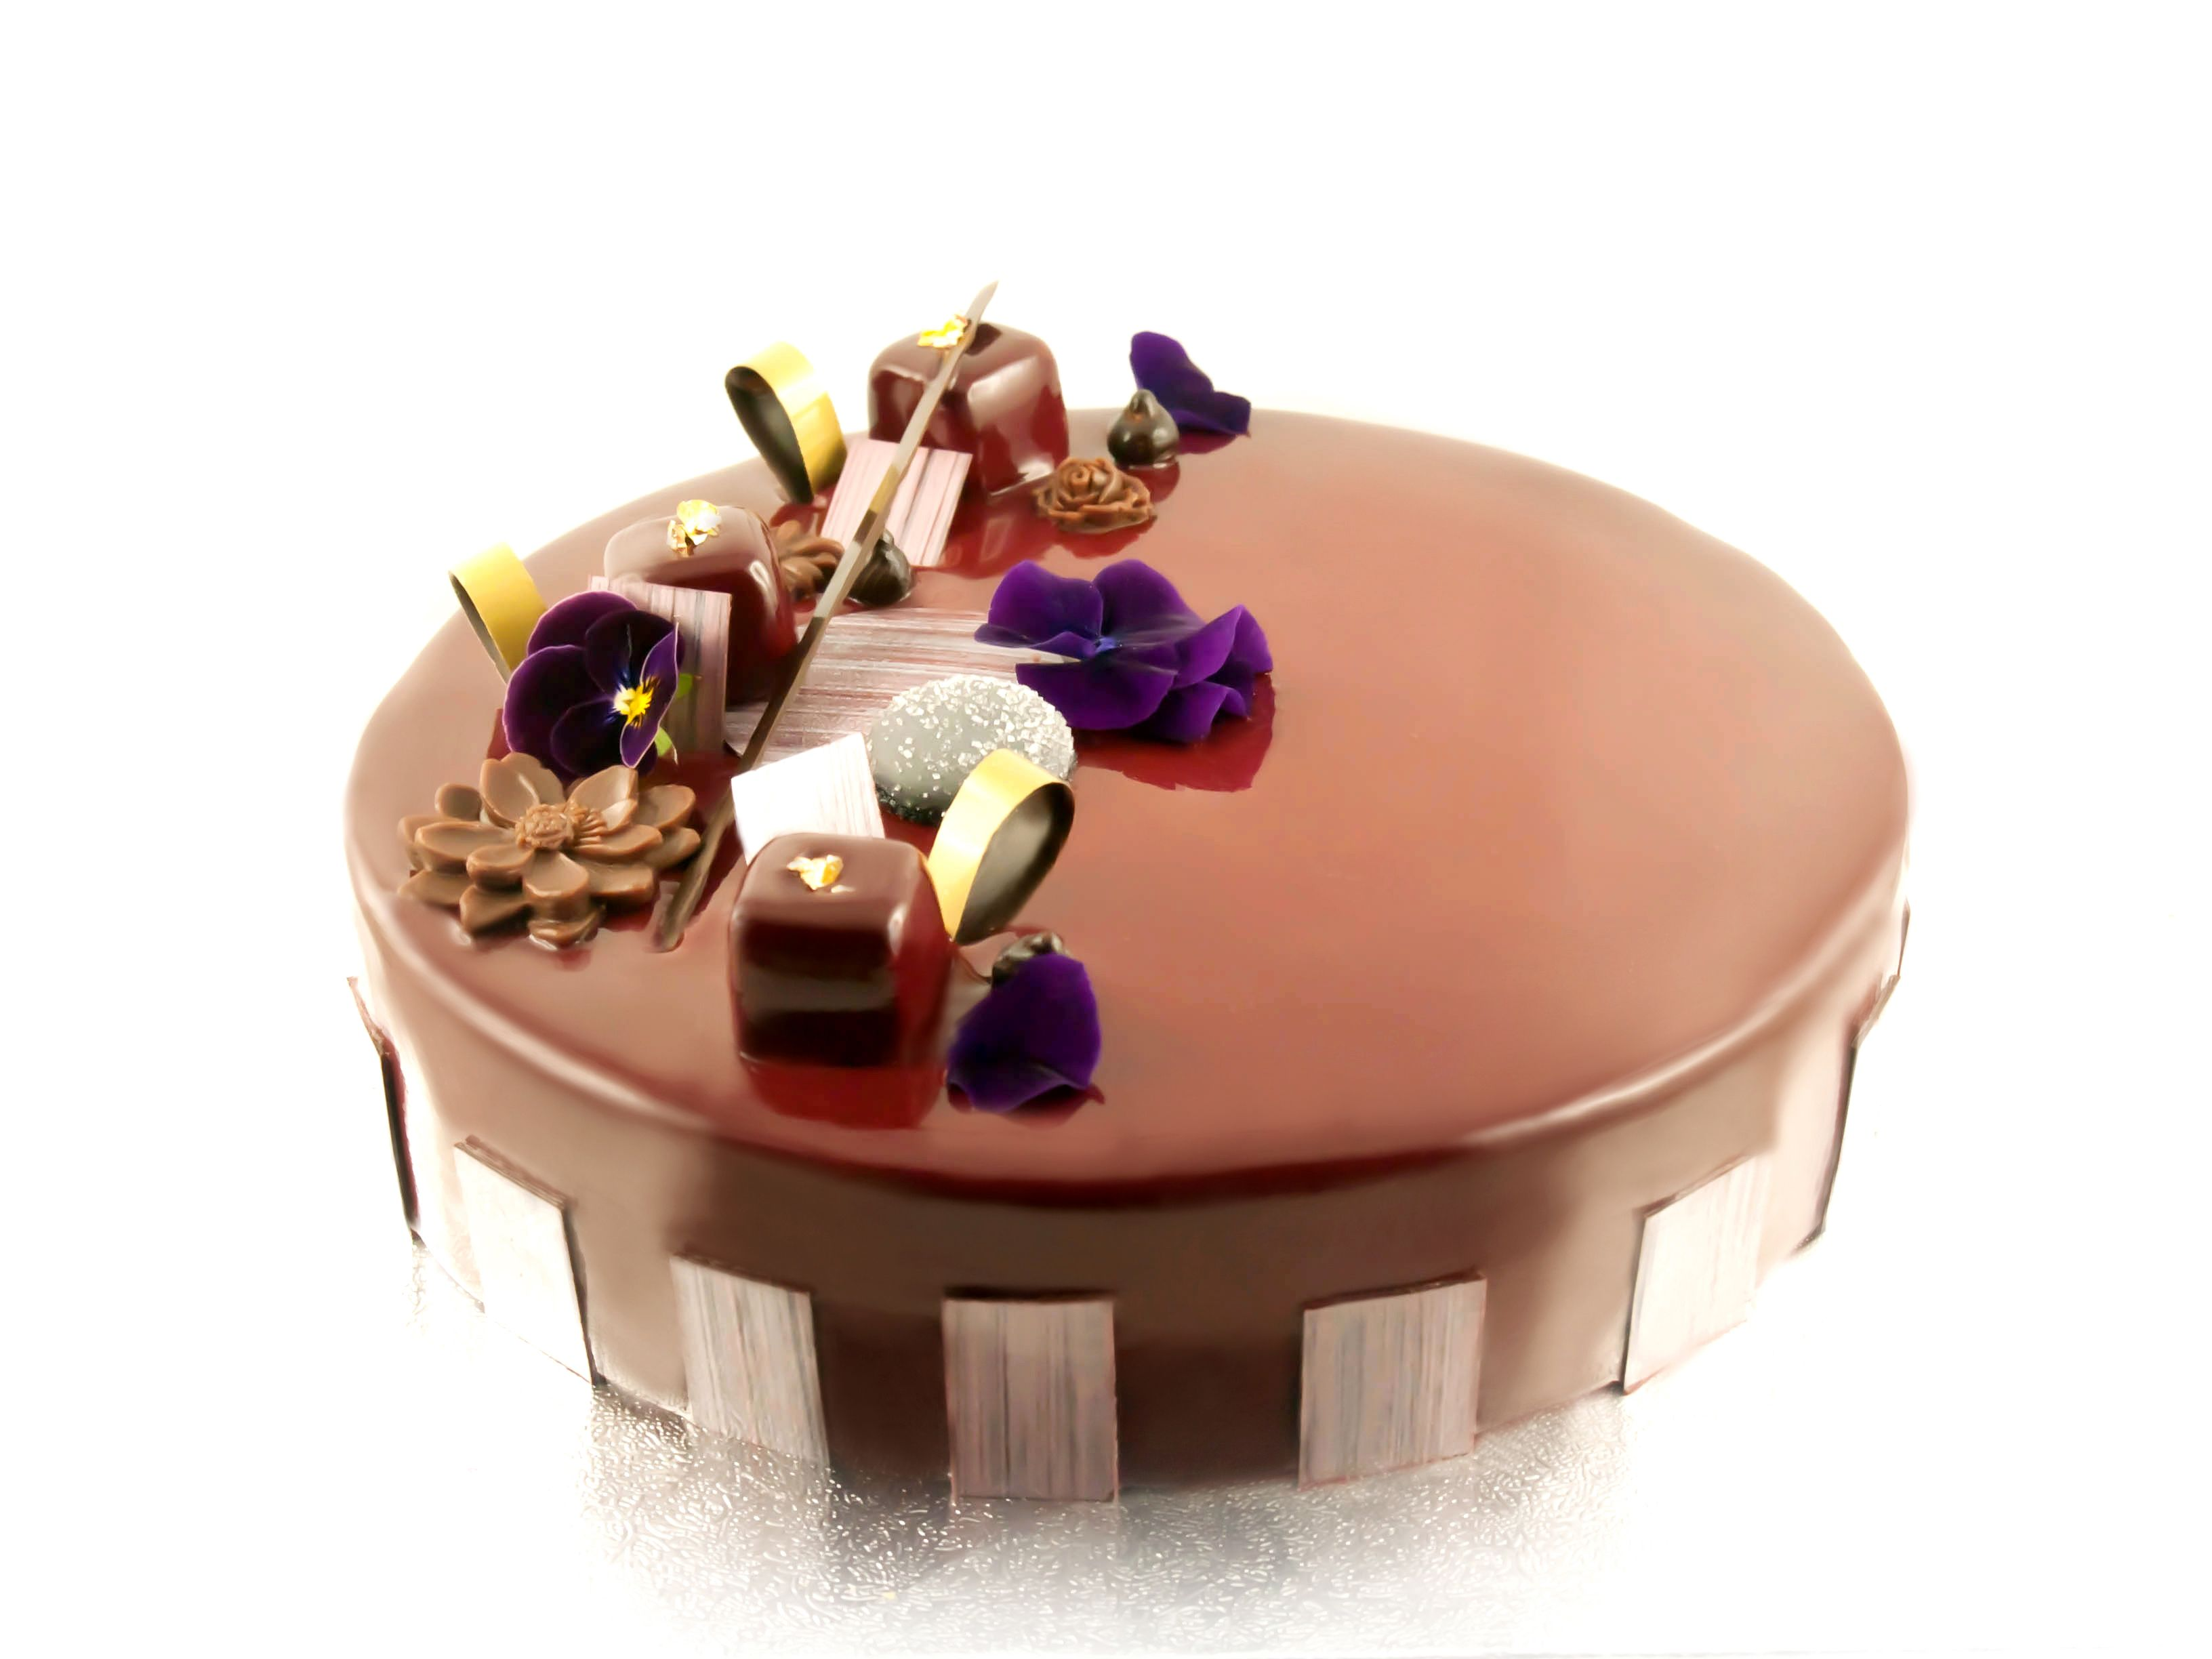 entremets chocolat biscuit dacquoise noisettes mousse. Black Bedroom Furniture Sets. Home Design Ideas